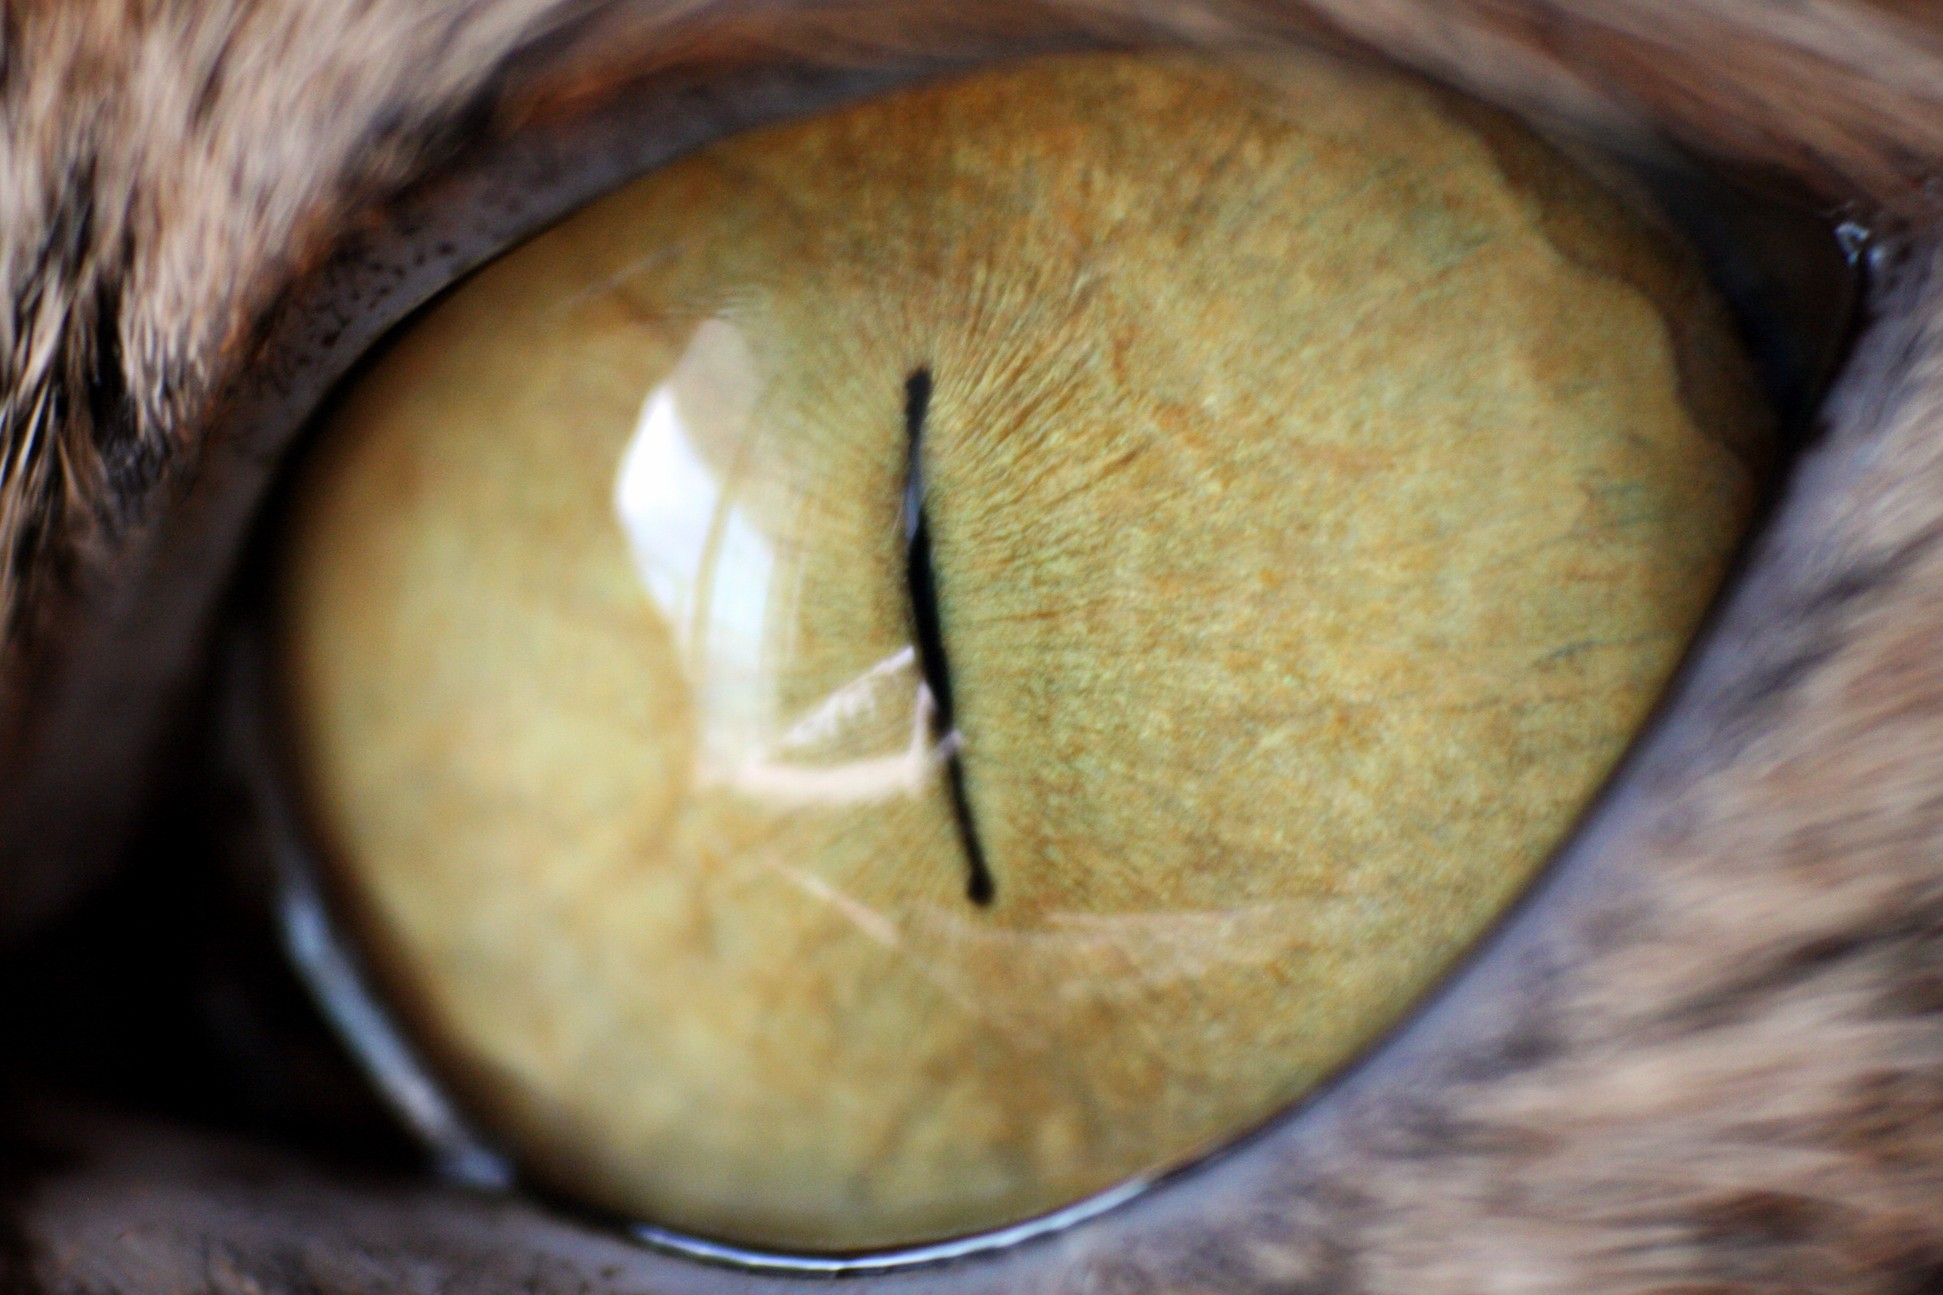 Self macro cat eye